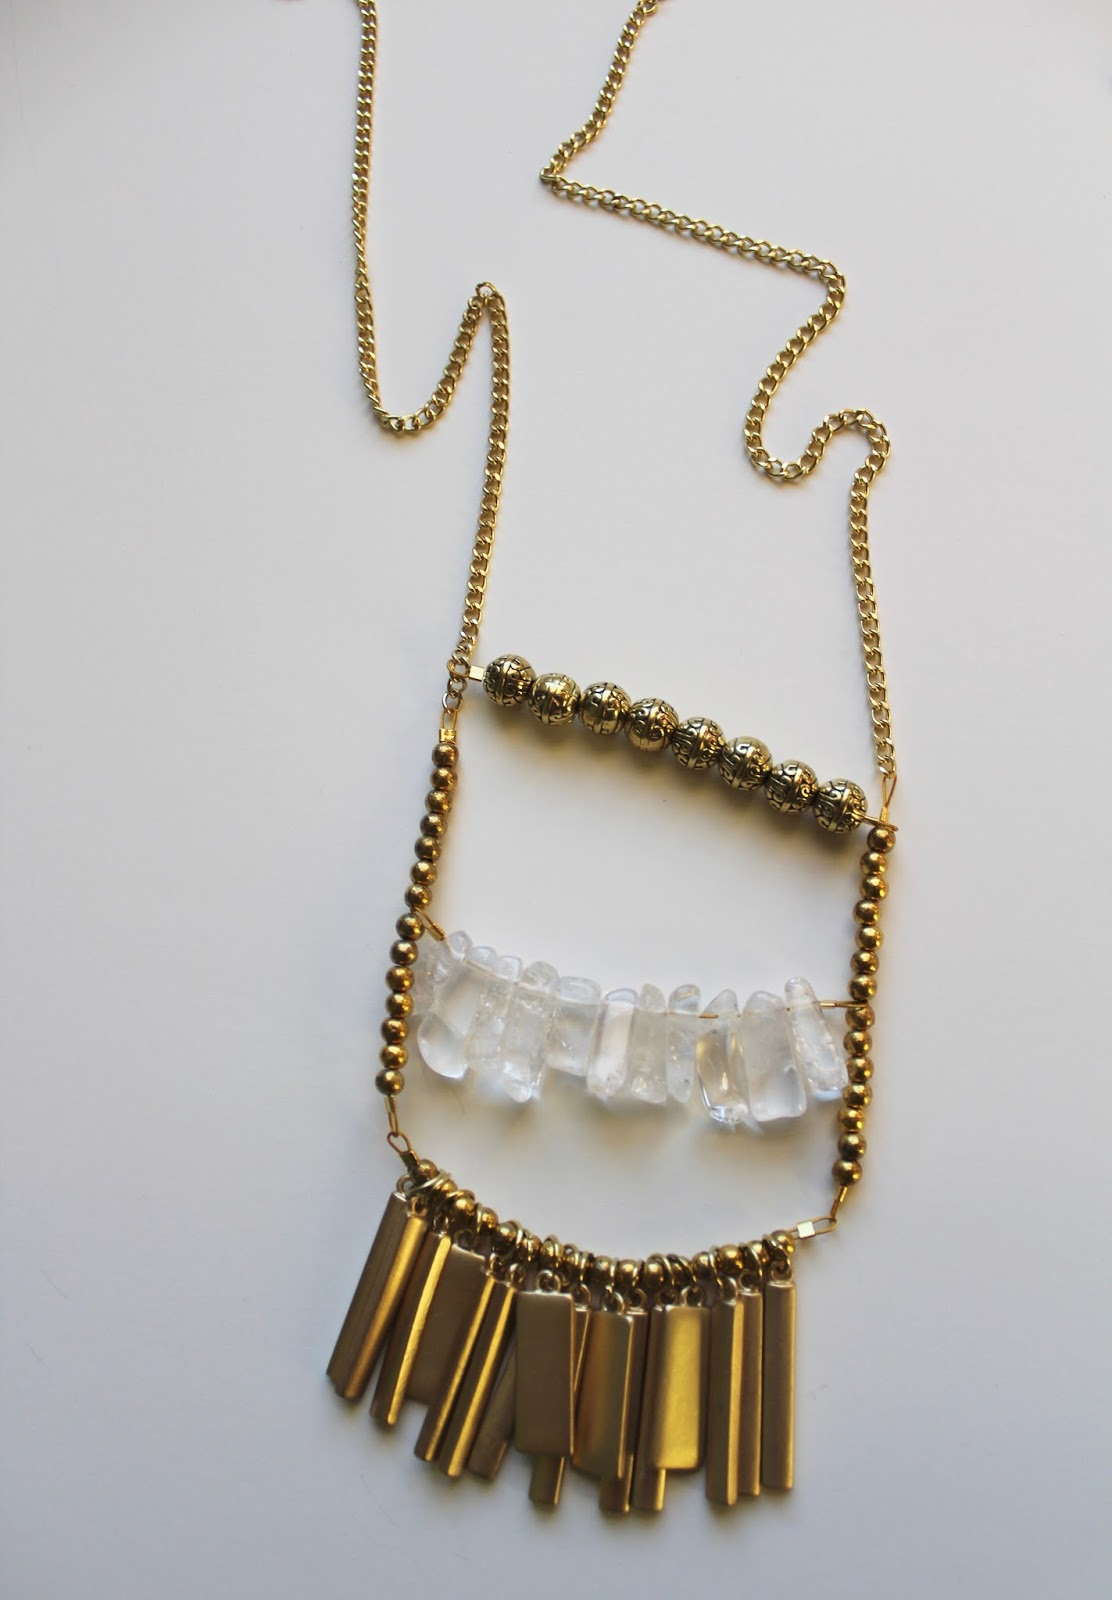 Gold pendant chain necklace diy my girlish whims add a clasp to the ends of the chain by connecting a clasp to the chain ends using jump rings baditri Choice Image